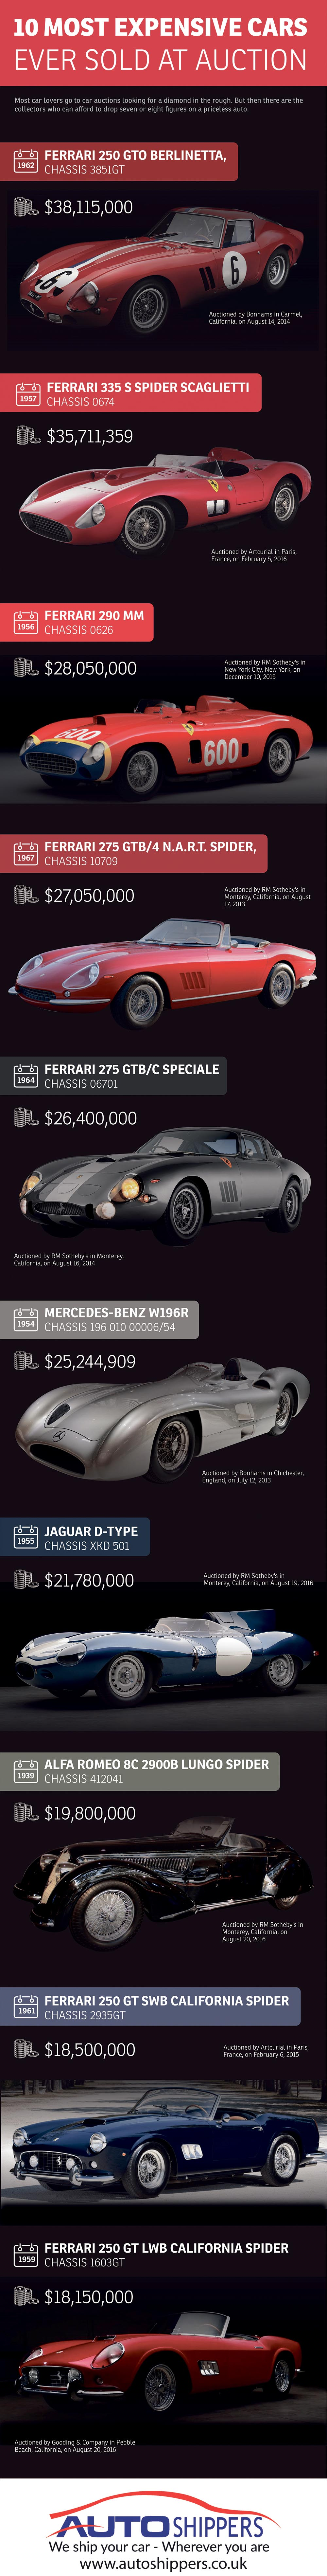 10 most expensive cars ever sold at auction infographic. Black Bedroom Furniture Sets. Home Design Ideas